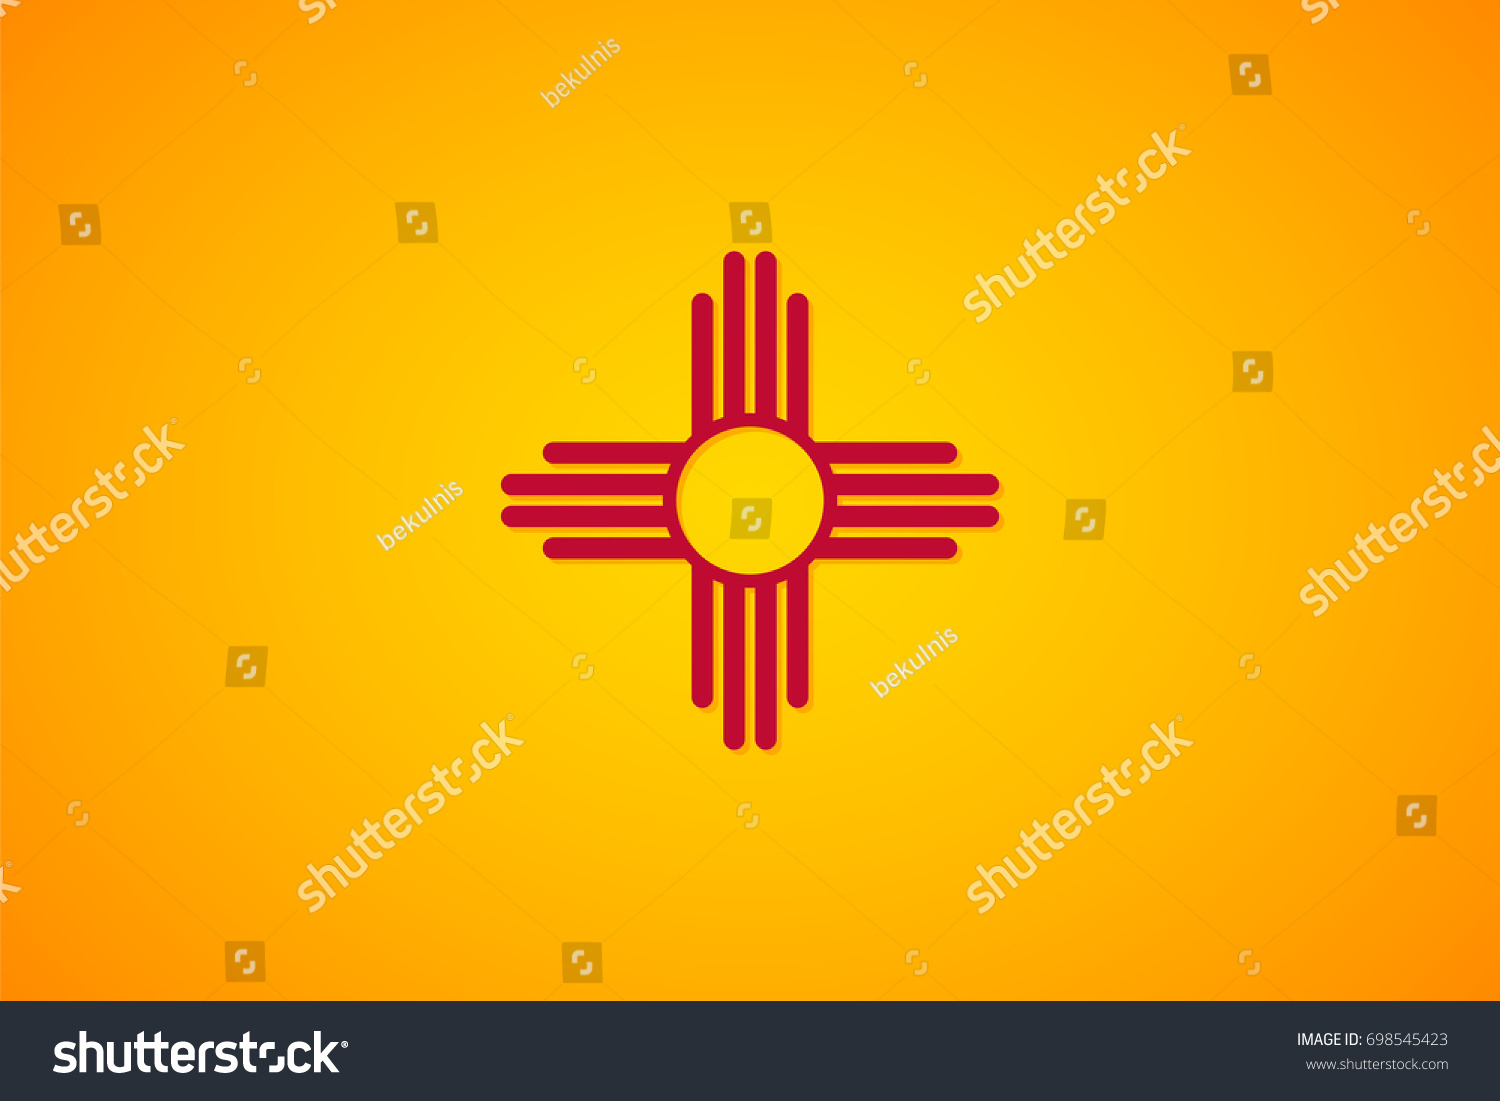 Isolated Vector Flag New Mexico Gradient Stock Vector 698545423